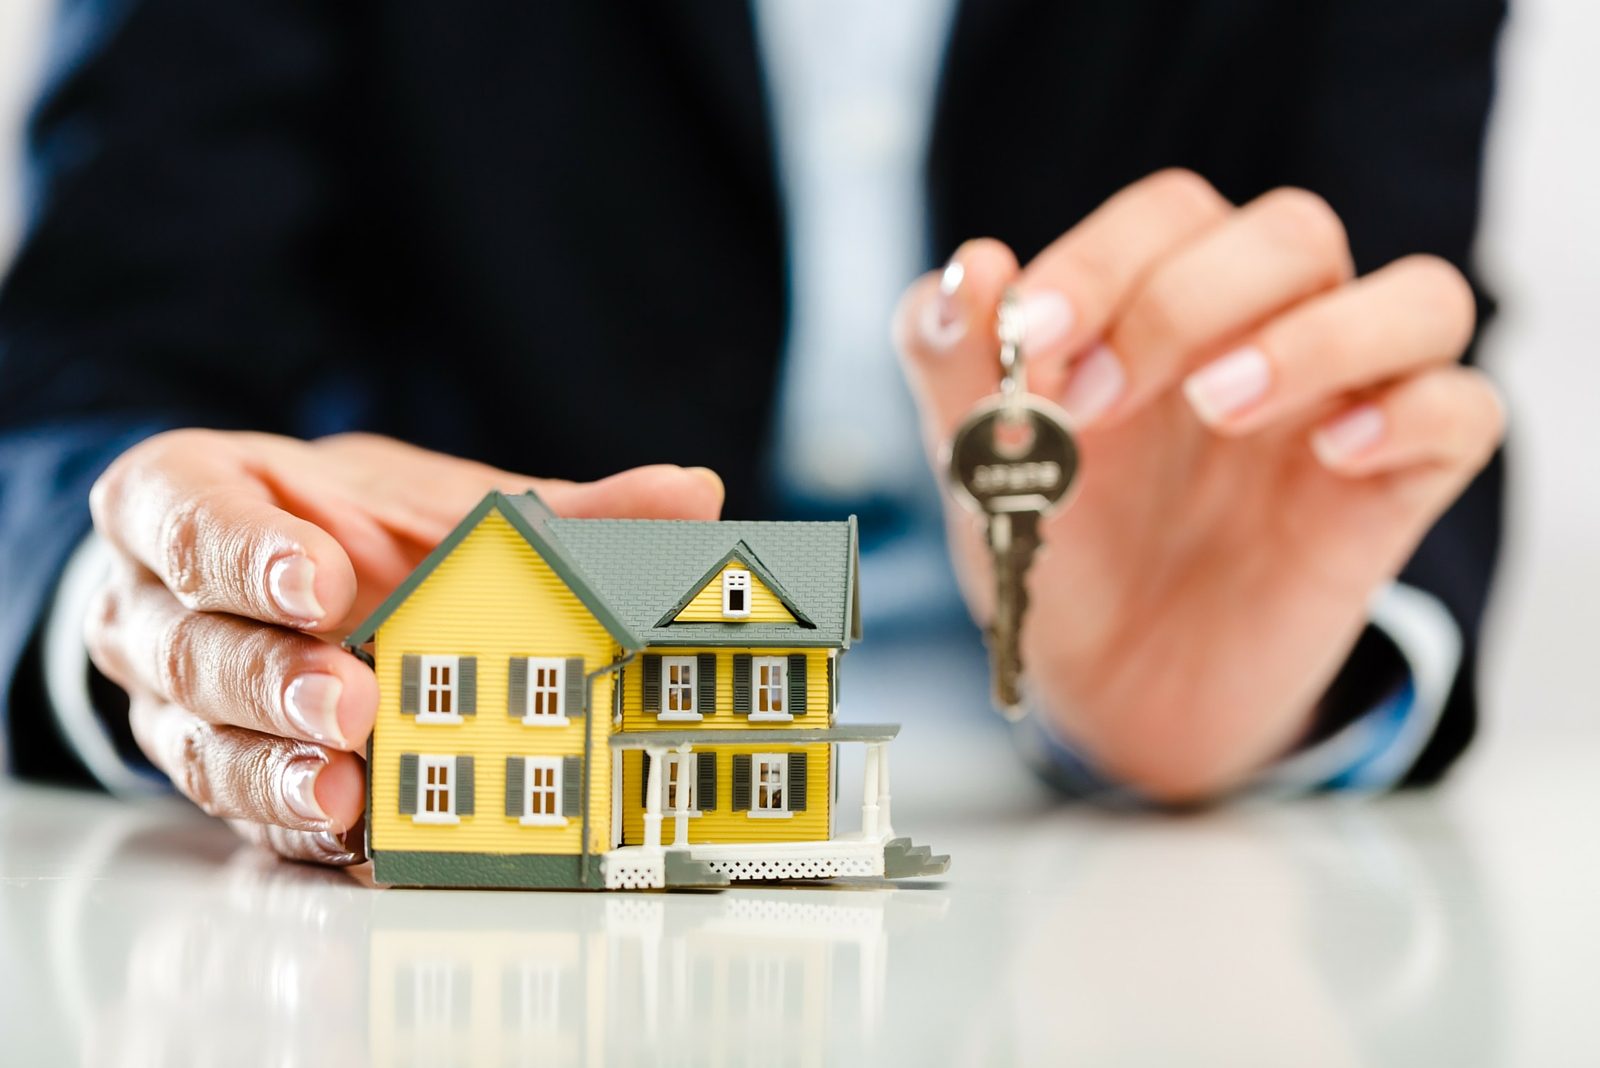 TOP TIPS FOR FIRST-TIME SELLERS